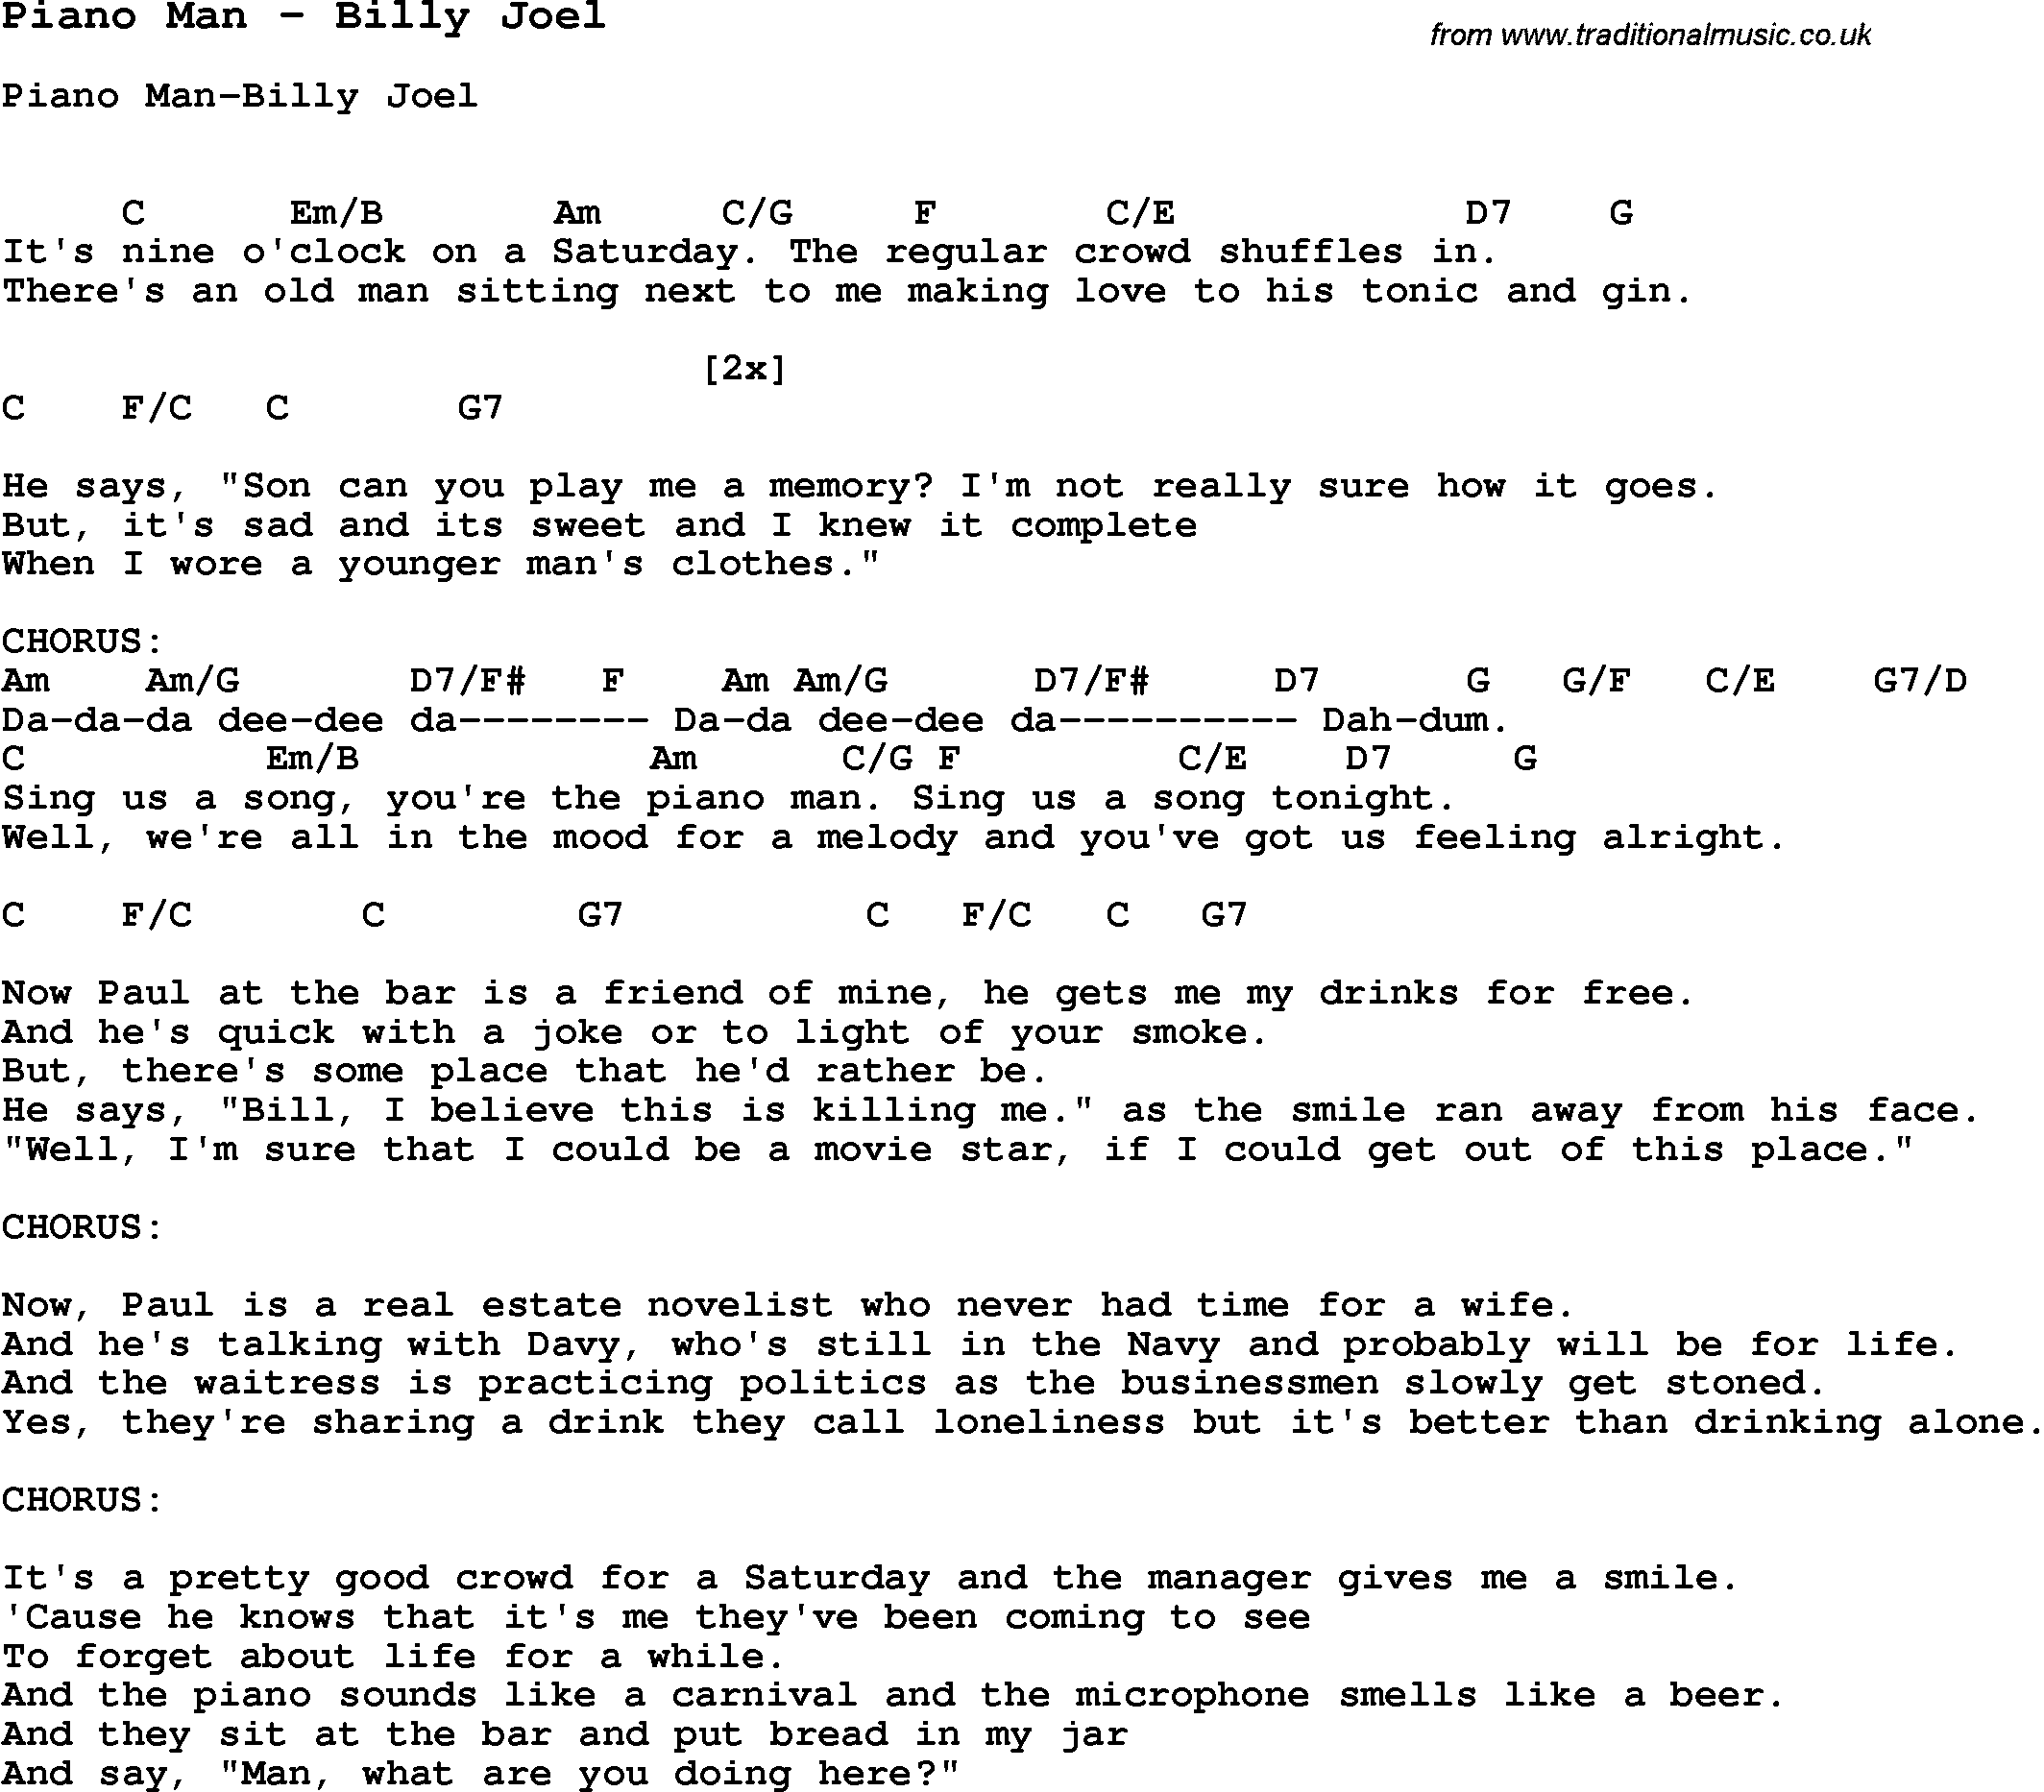 Song Piano Man by Billy Joel, song lyric for vocal performance plus accompaniment chords for ...